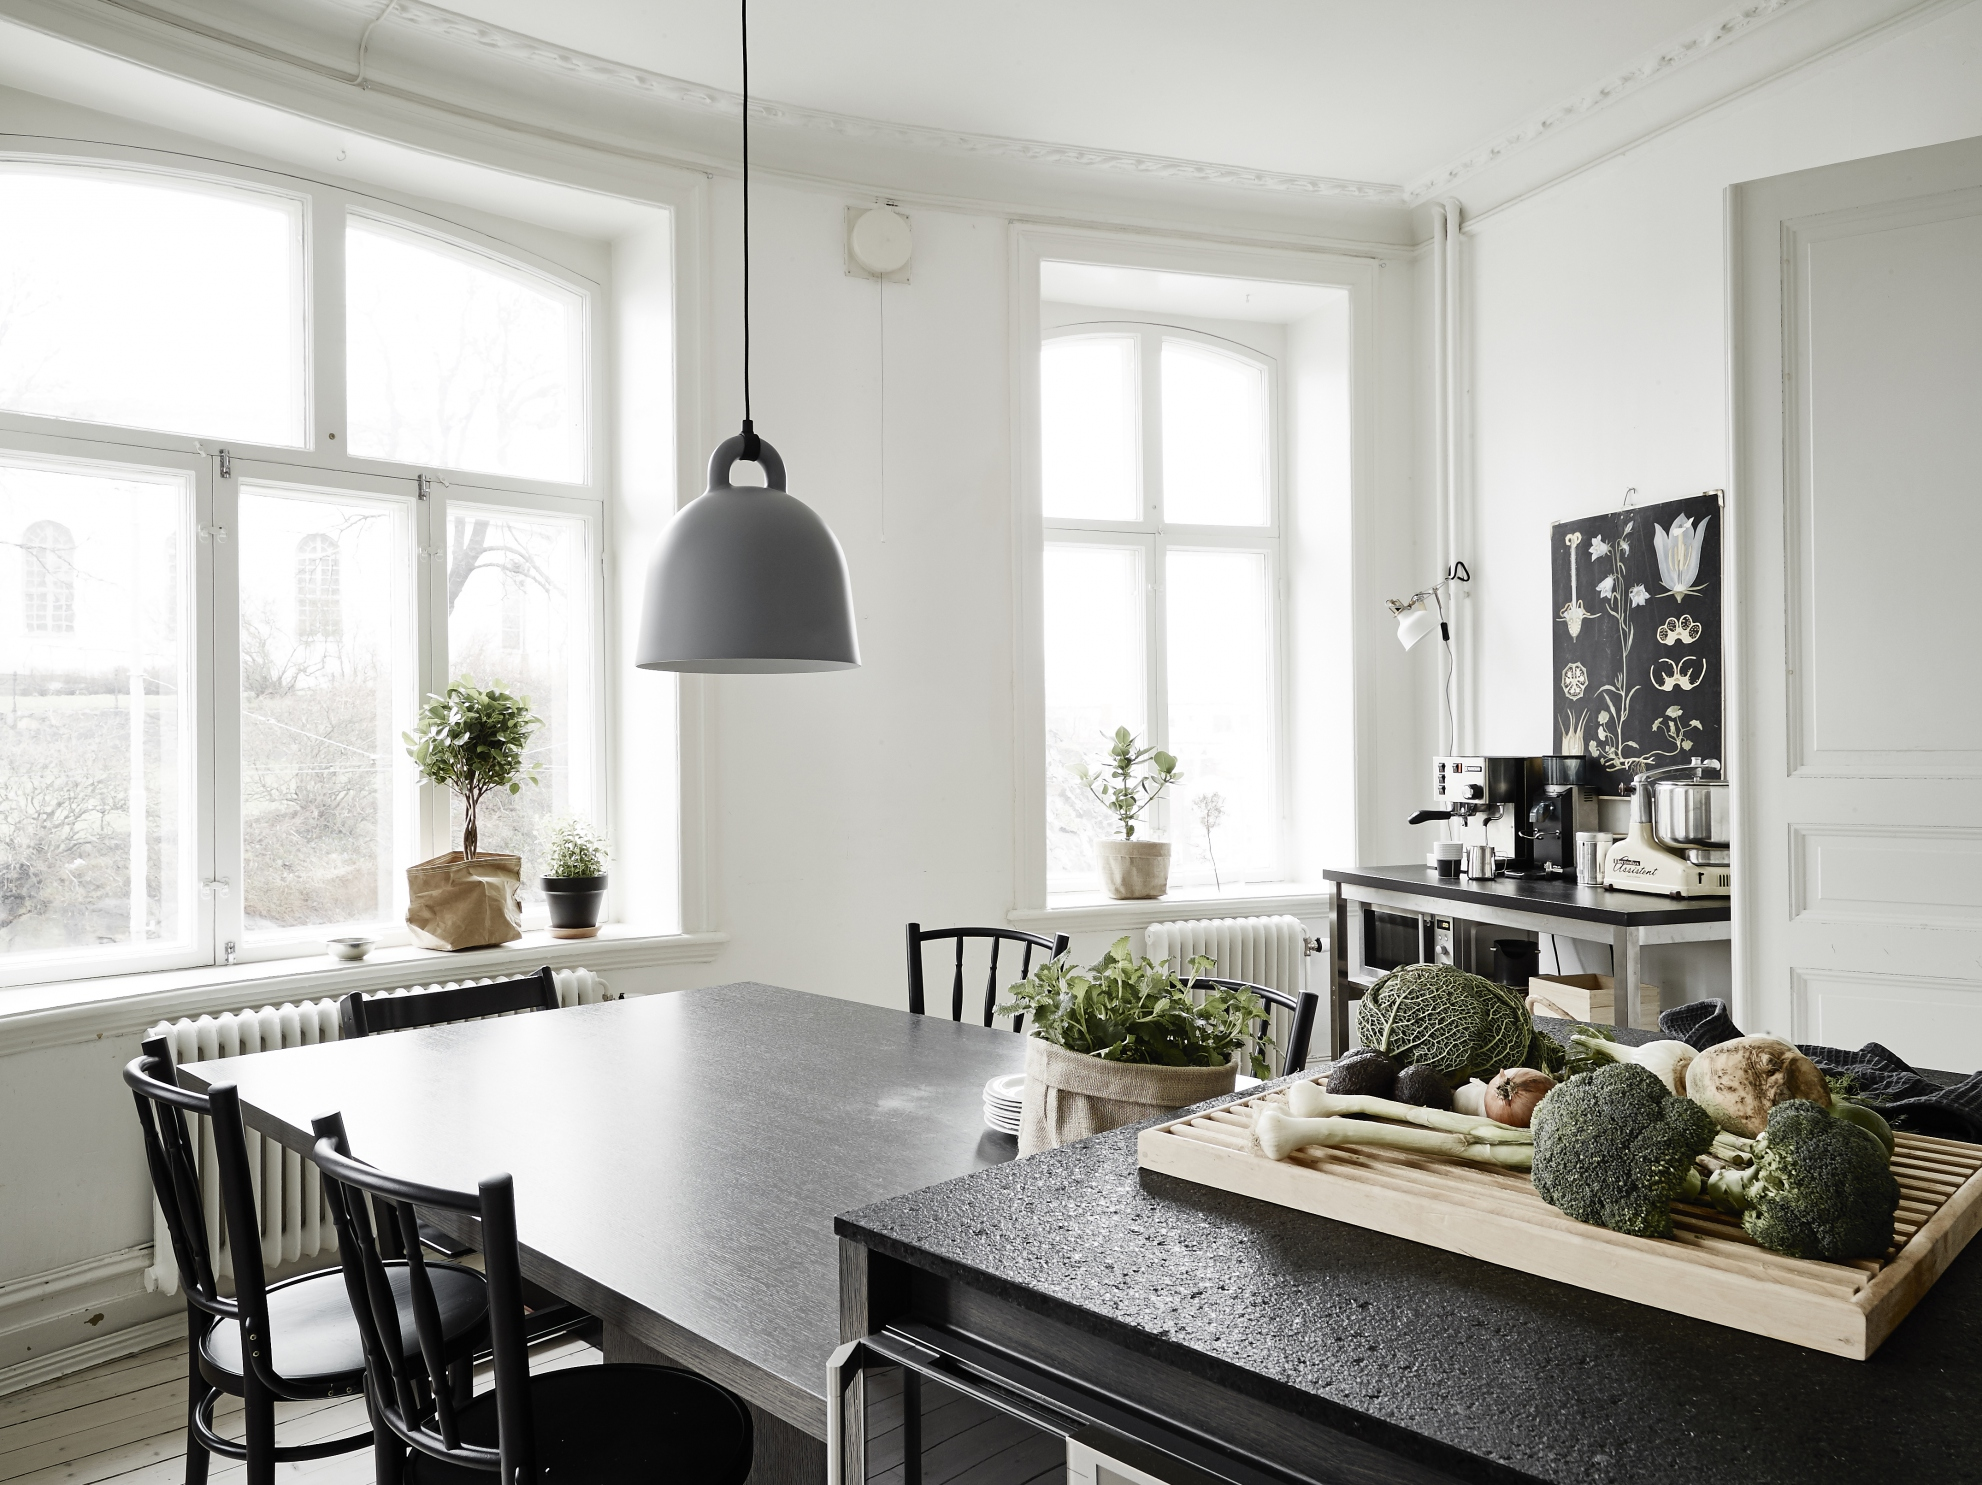 ... Small Apartment With A Big Kitchen Island   Via Cocolapinedesign.com ...